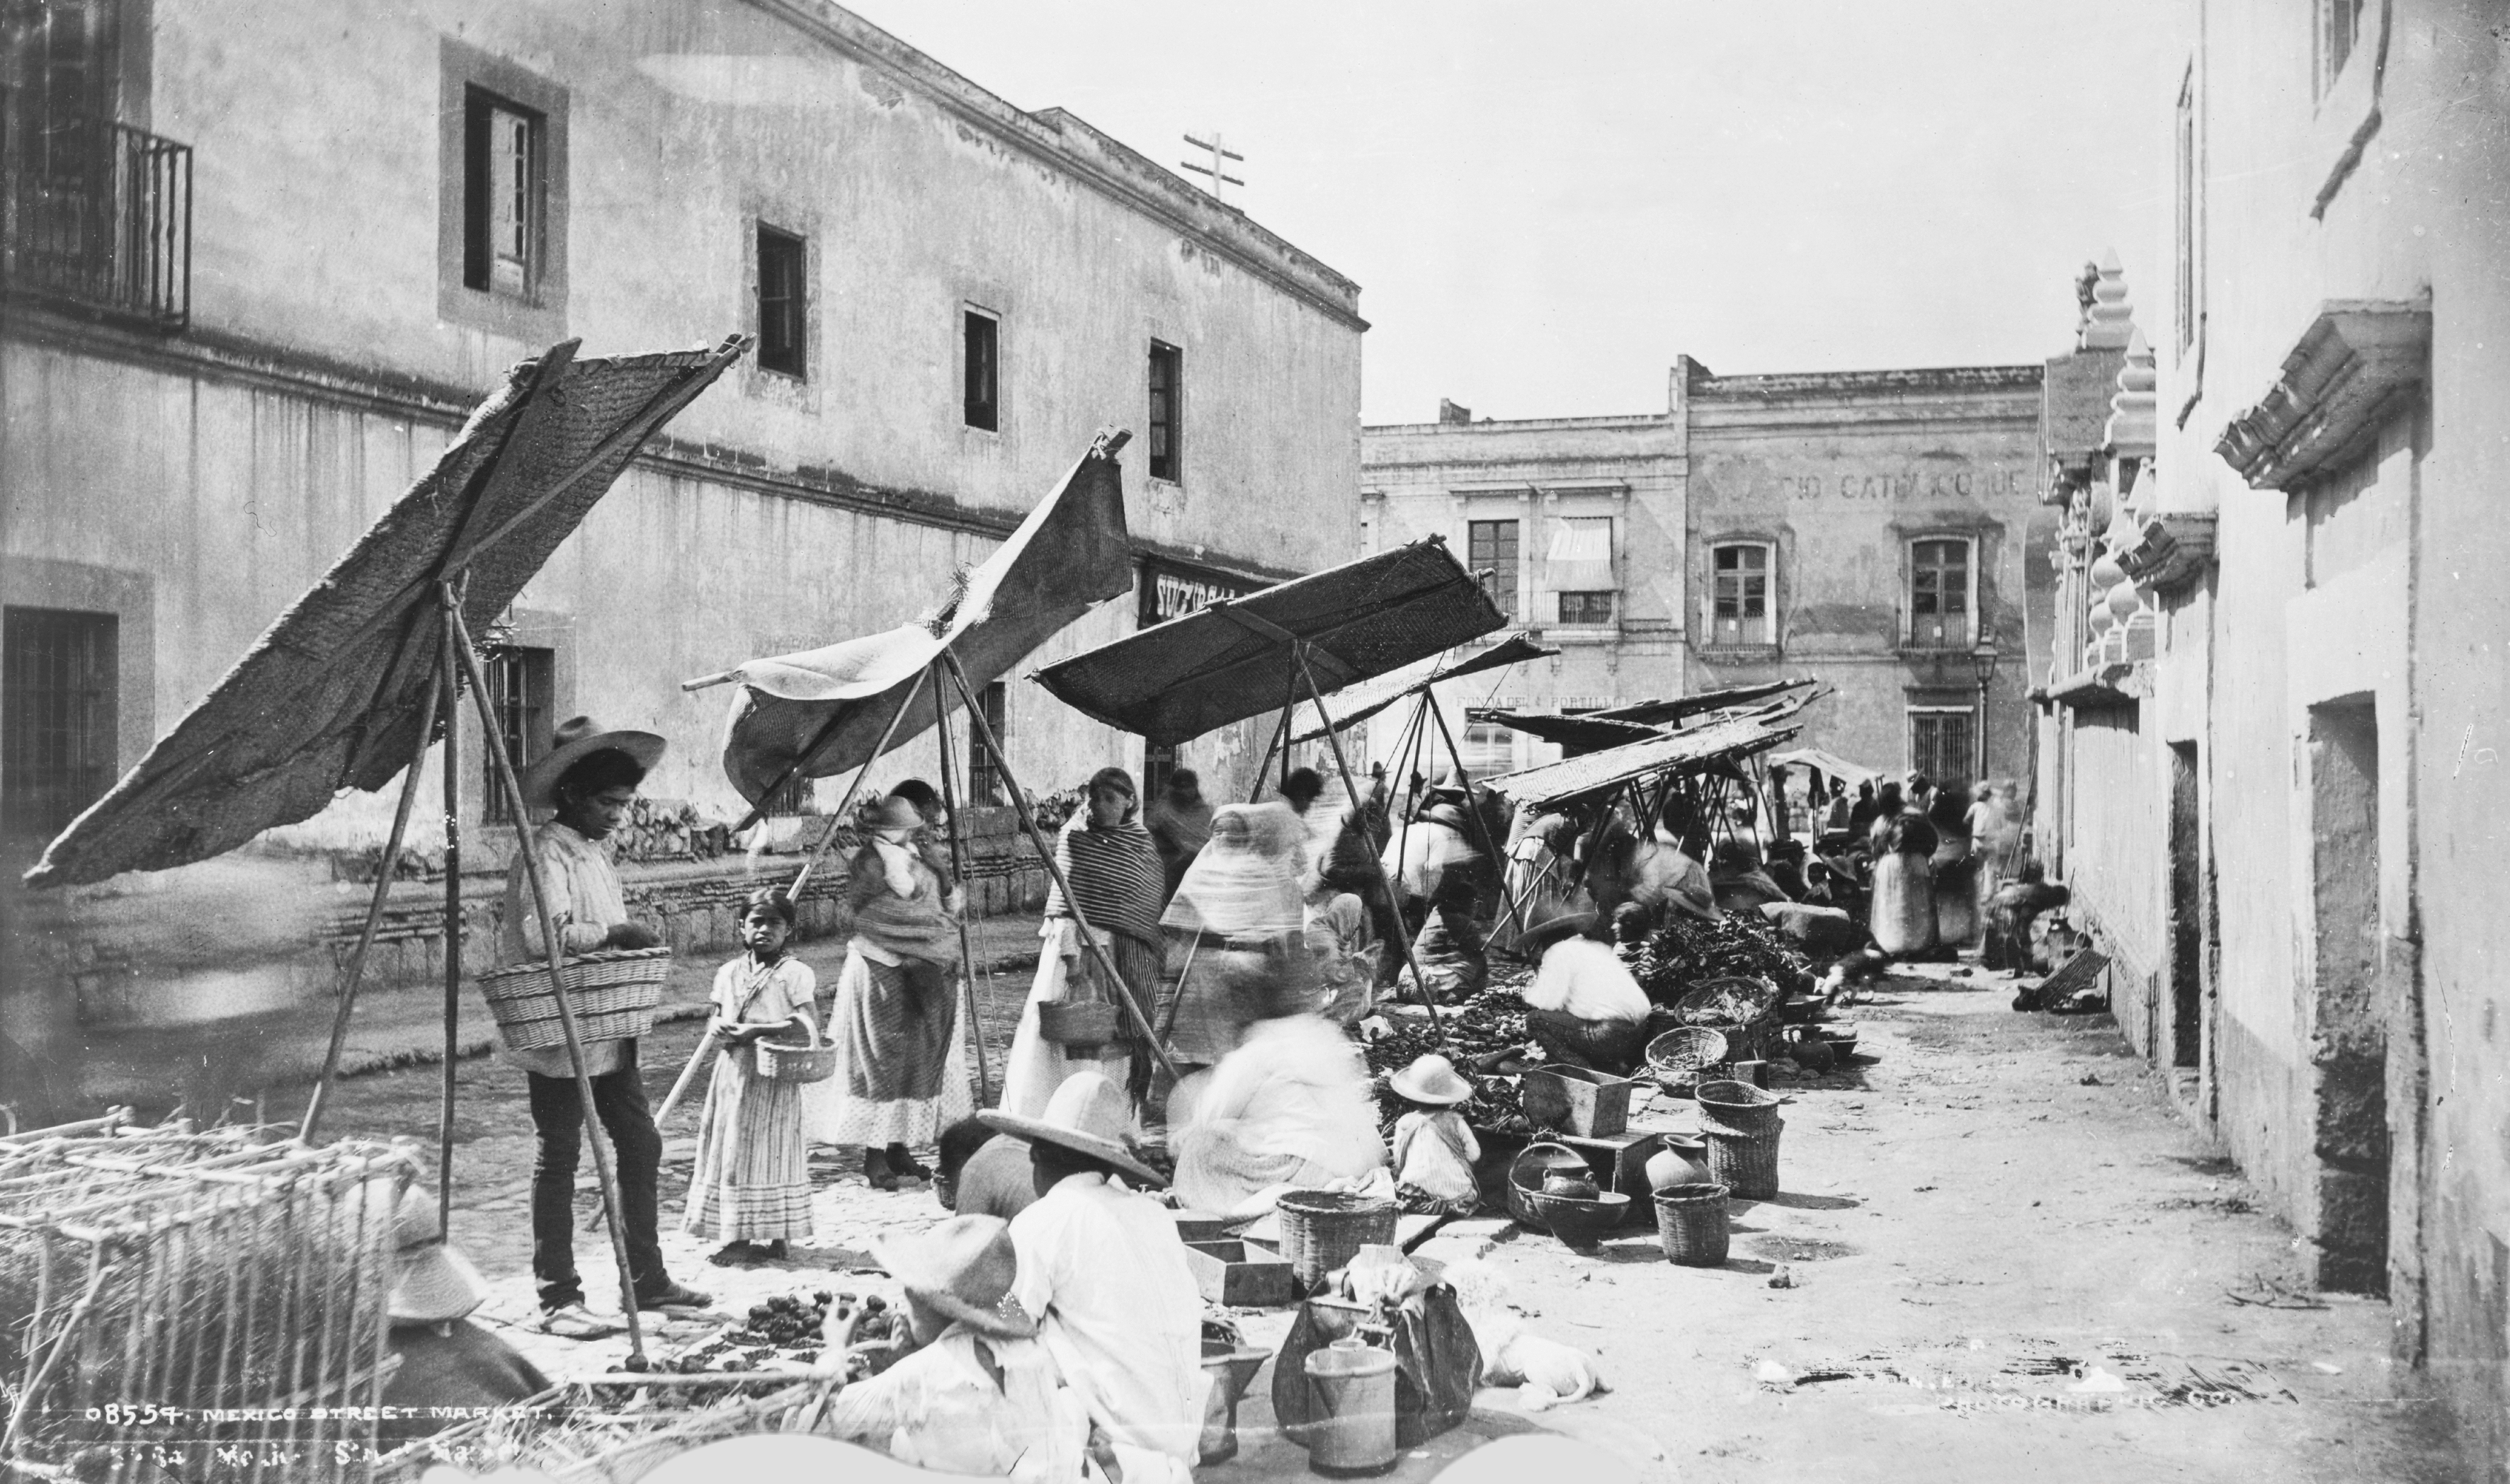 File:Mexico City street market 1885.jpg